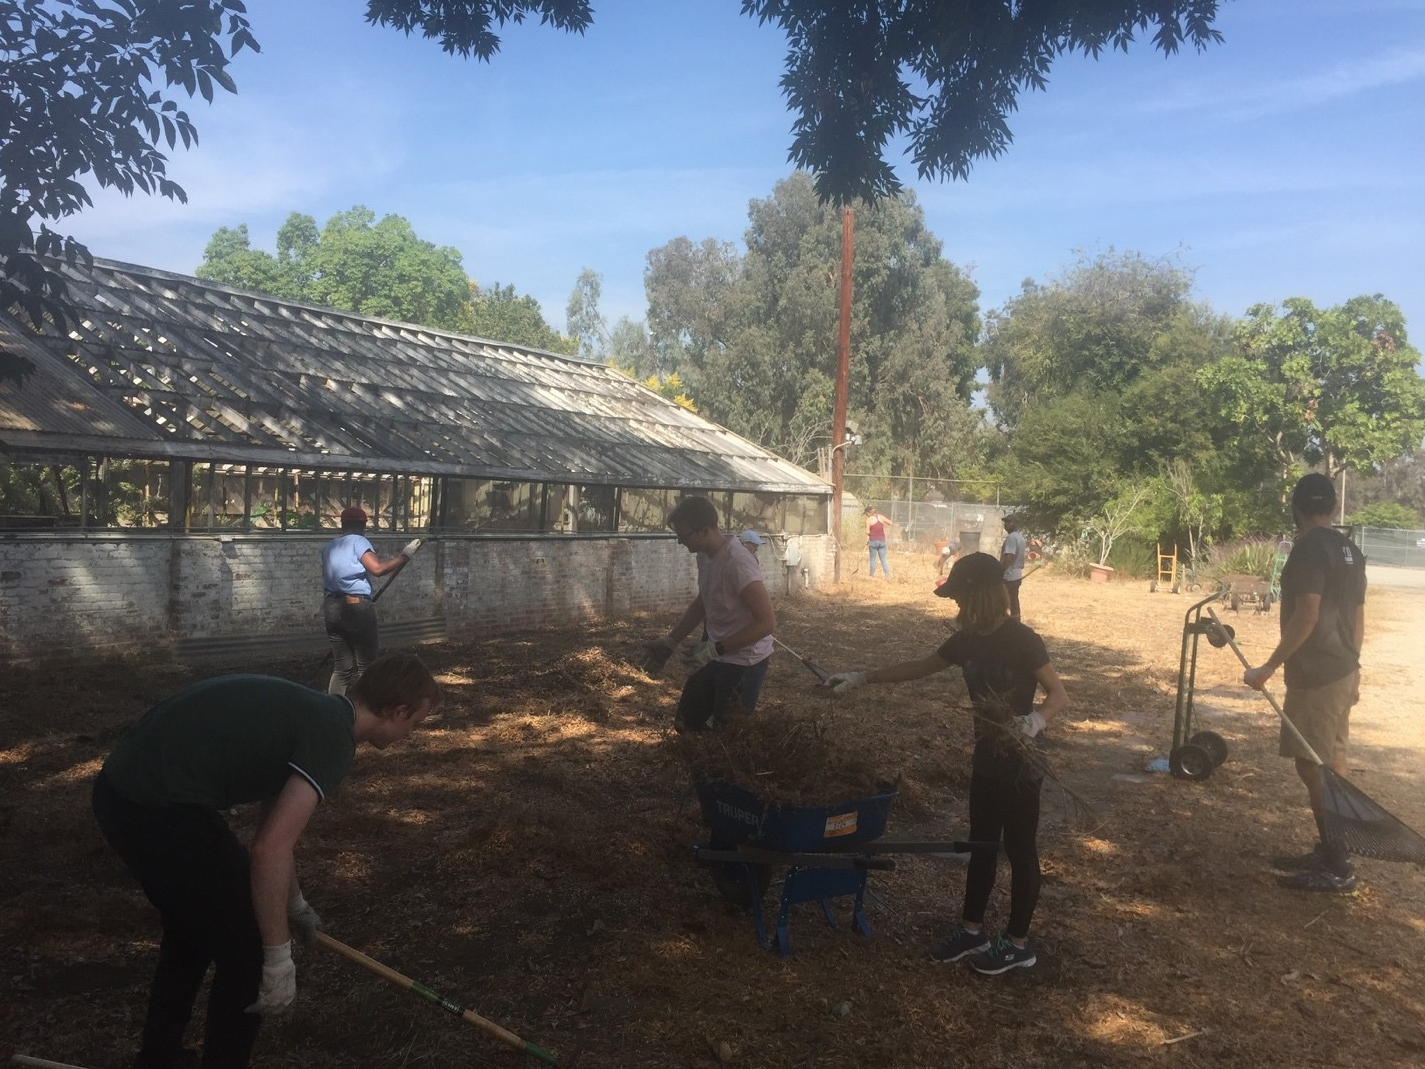 UCLA-INFEWS trainees work together to clear the garden space.